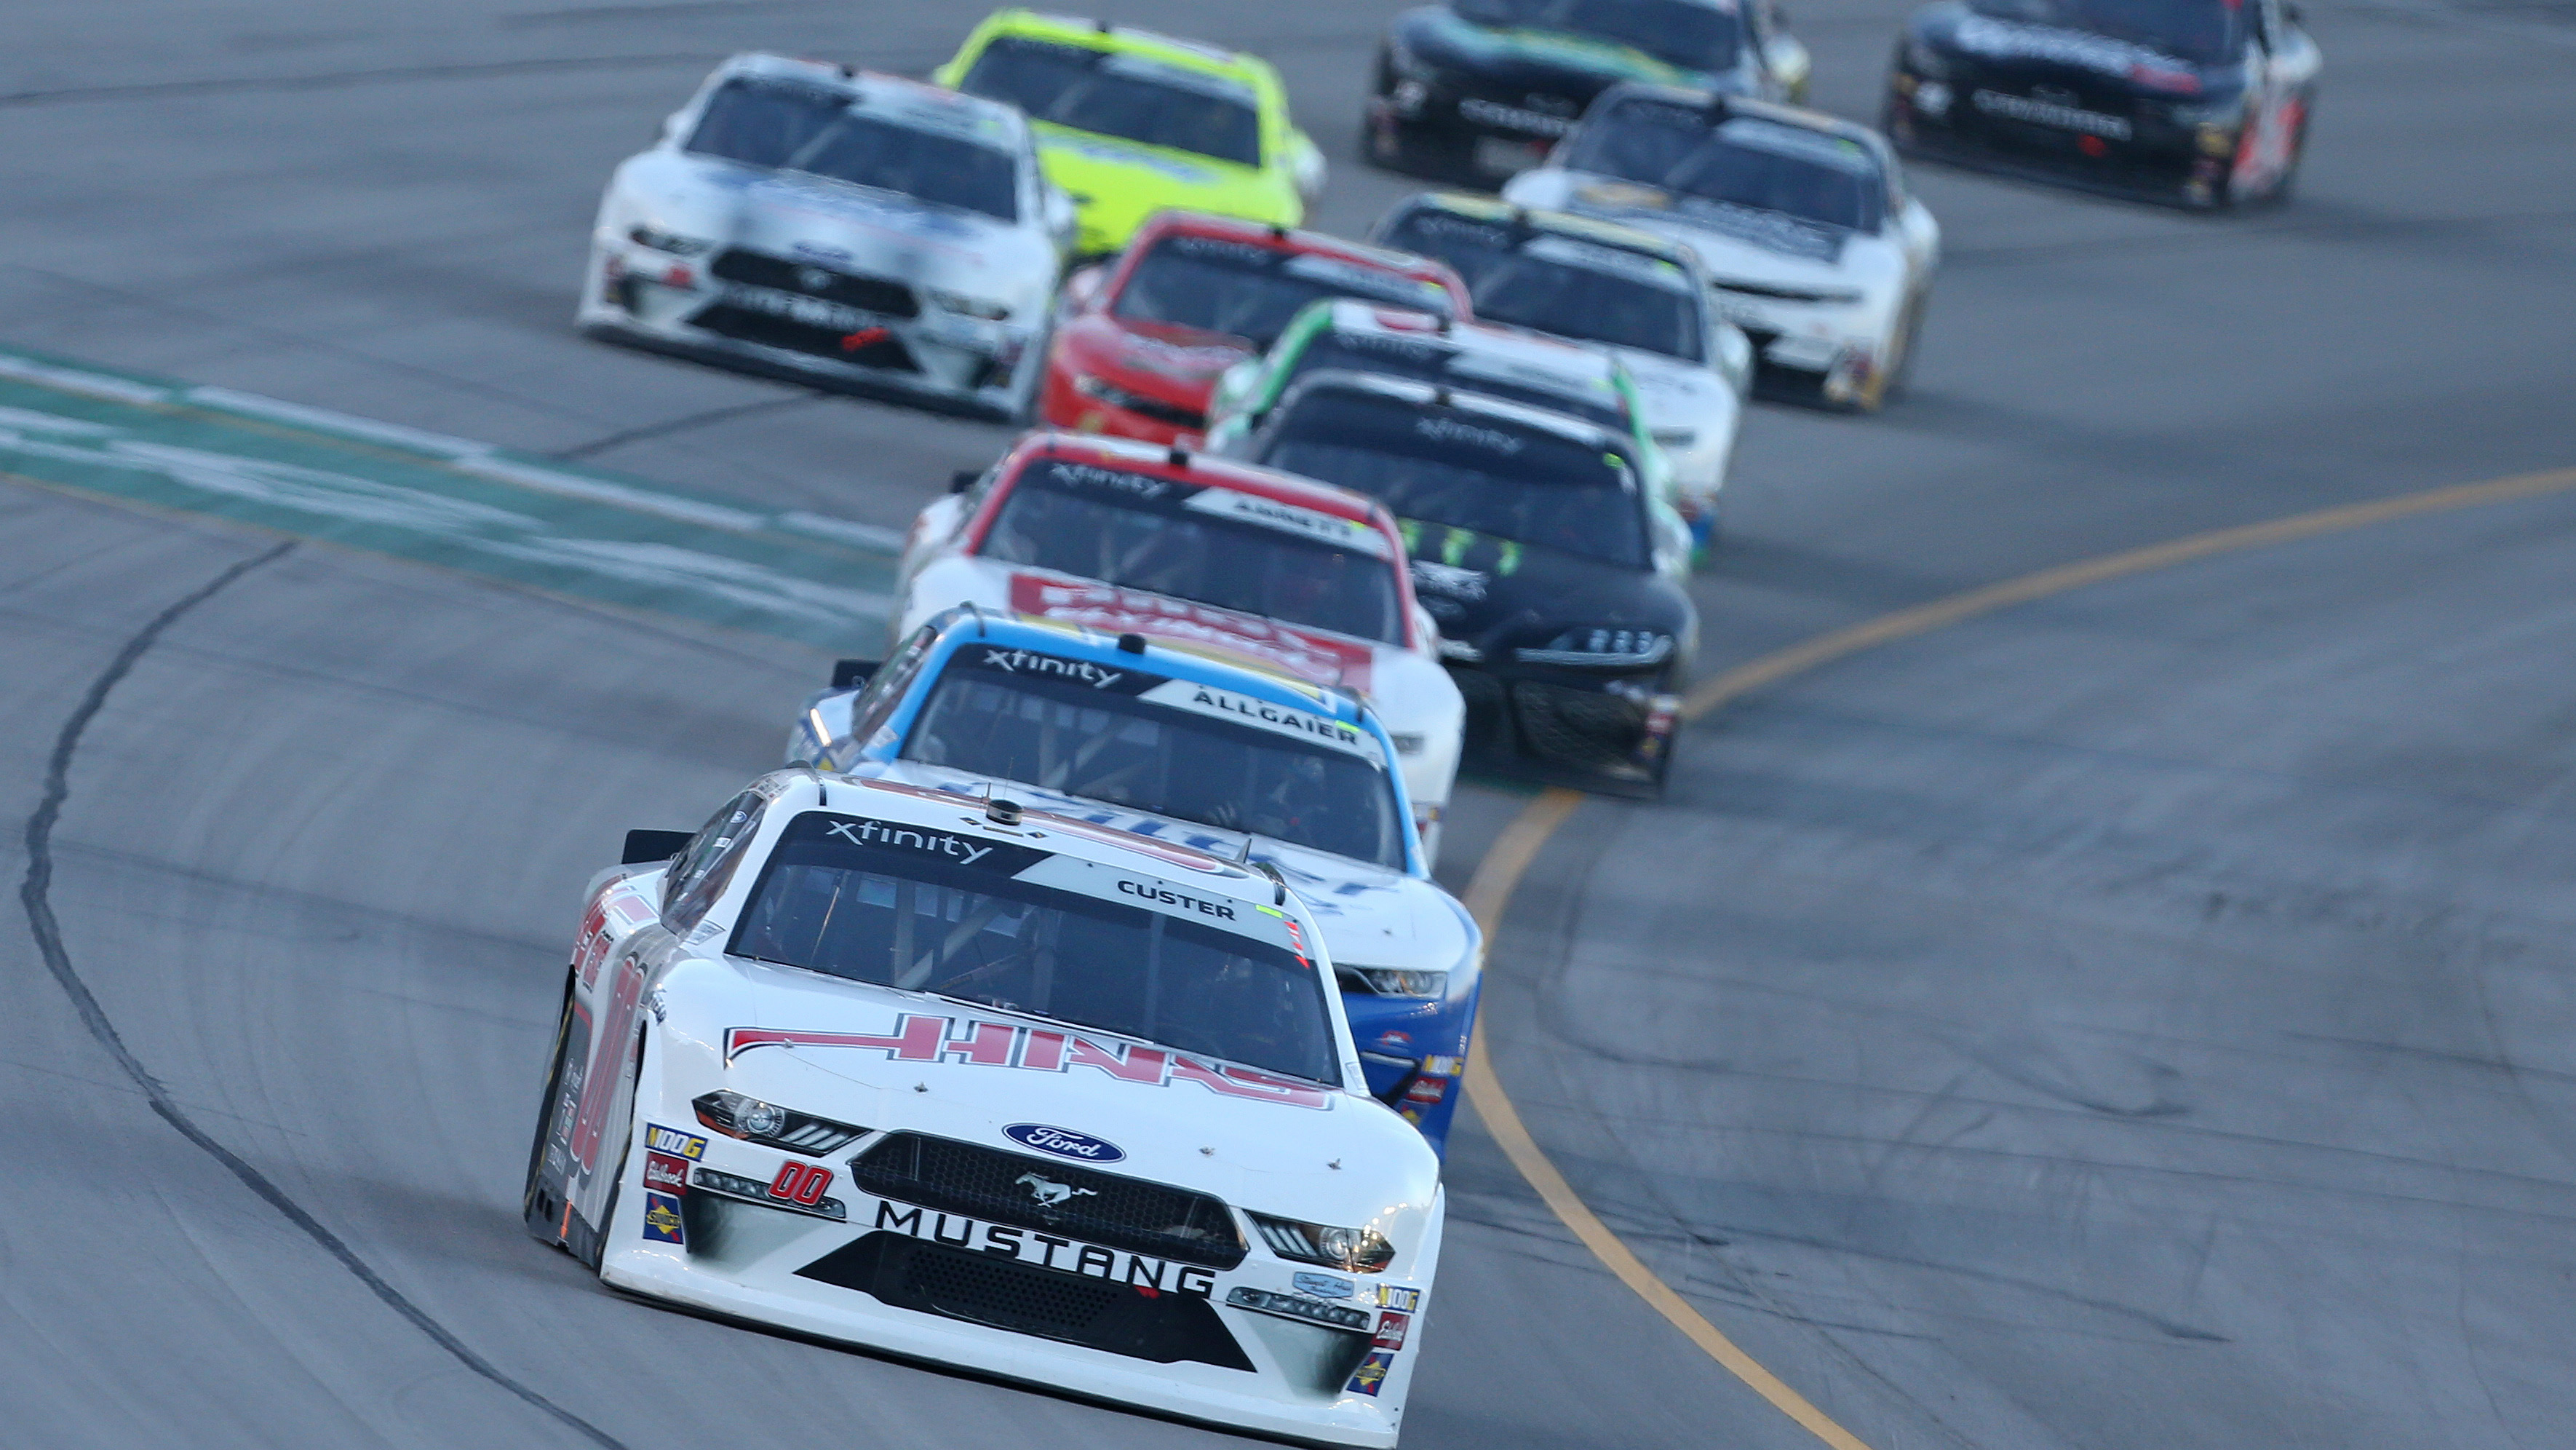 Extended Highlights: Cole Custer wins Xfinity Series race at Kentucky